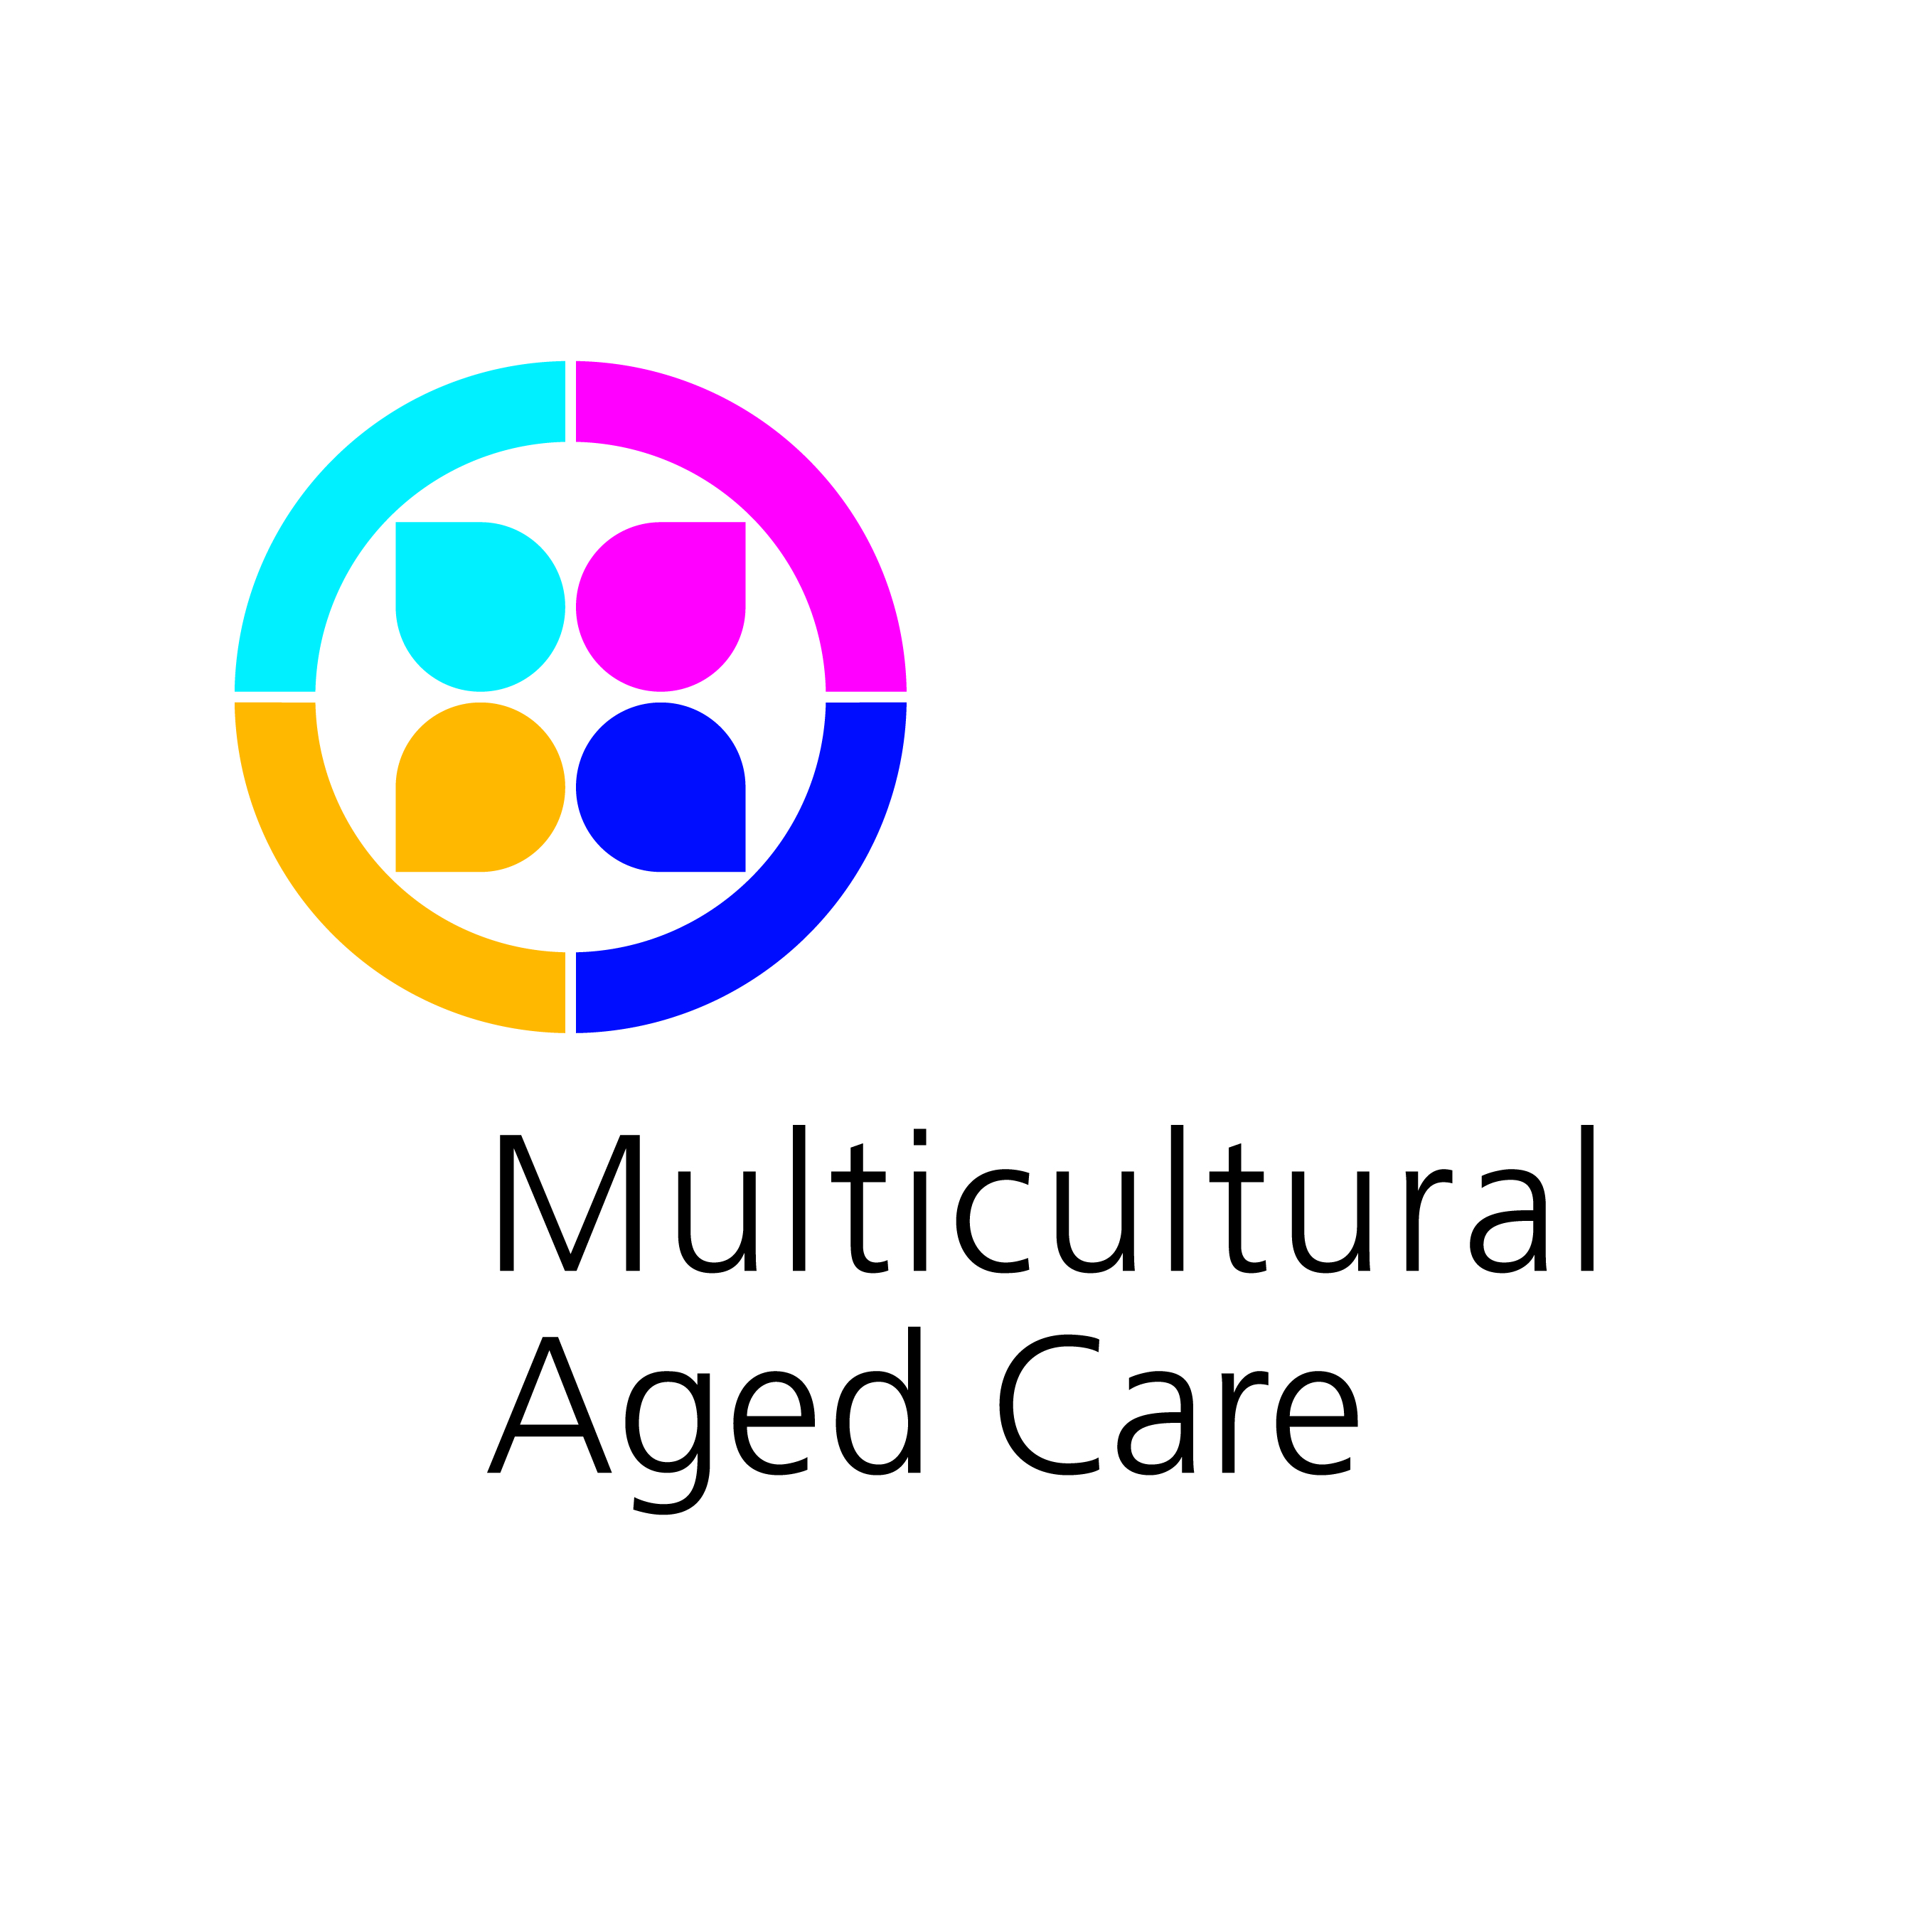 Multicultural Aged Care